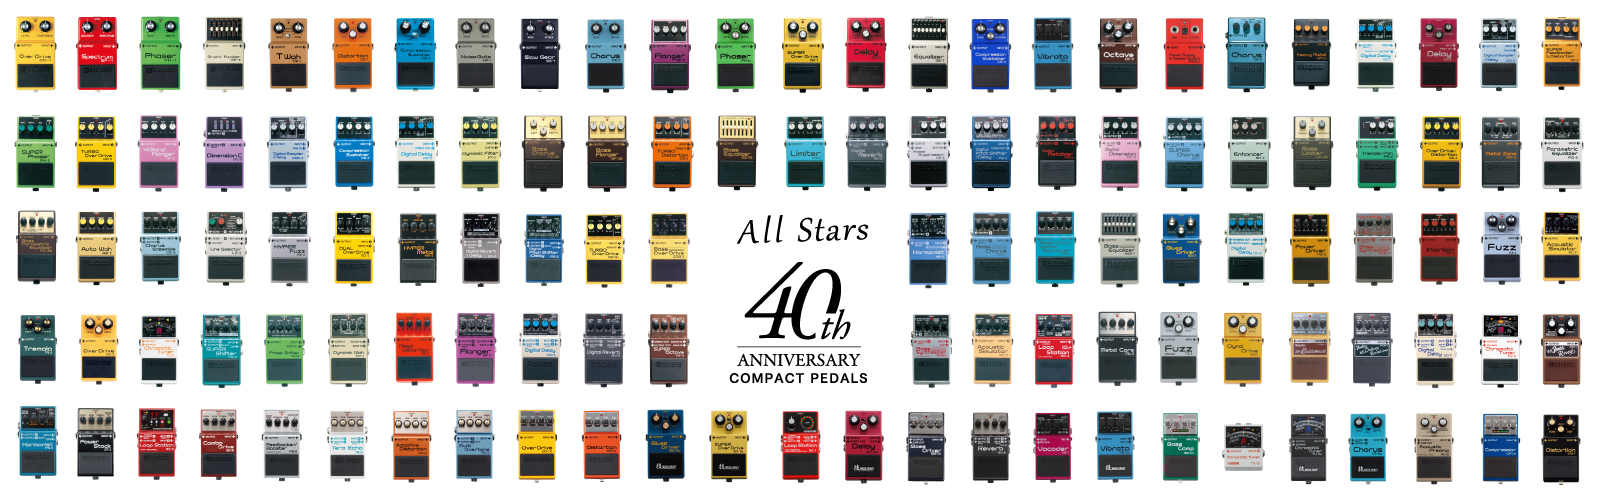 All Stars 40th ANNIVERSARY COMPACT PEDALS